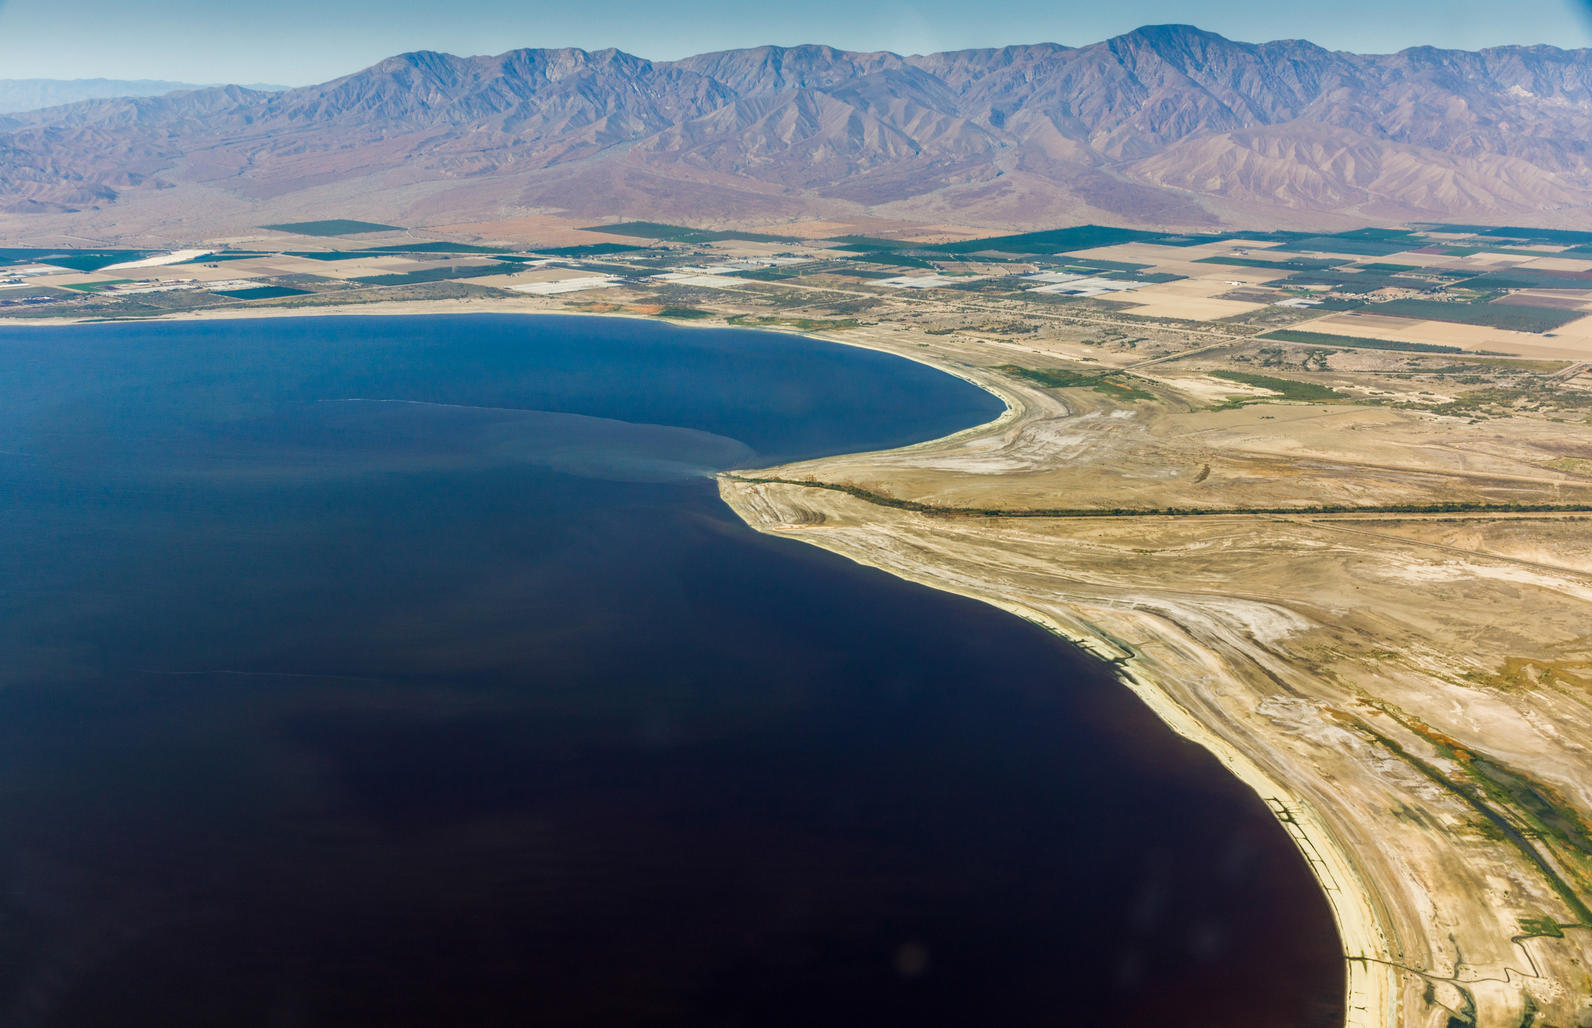 as state makes new commitments on salton sea timeline  it will still be judged by its work on